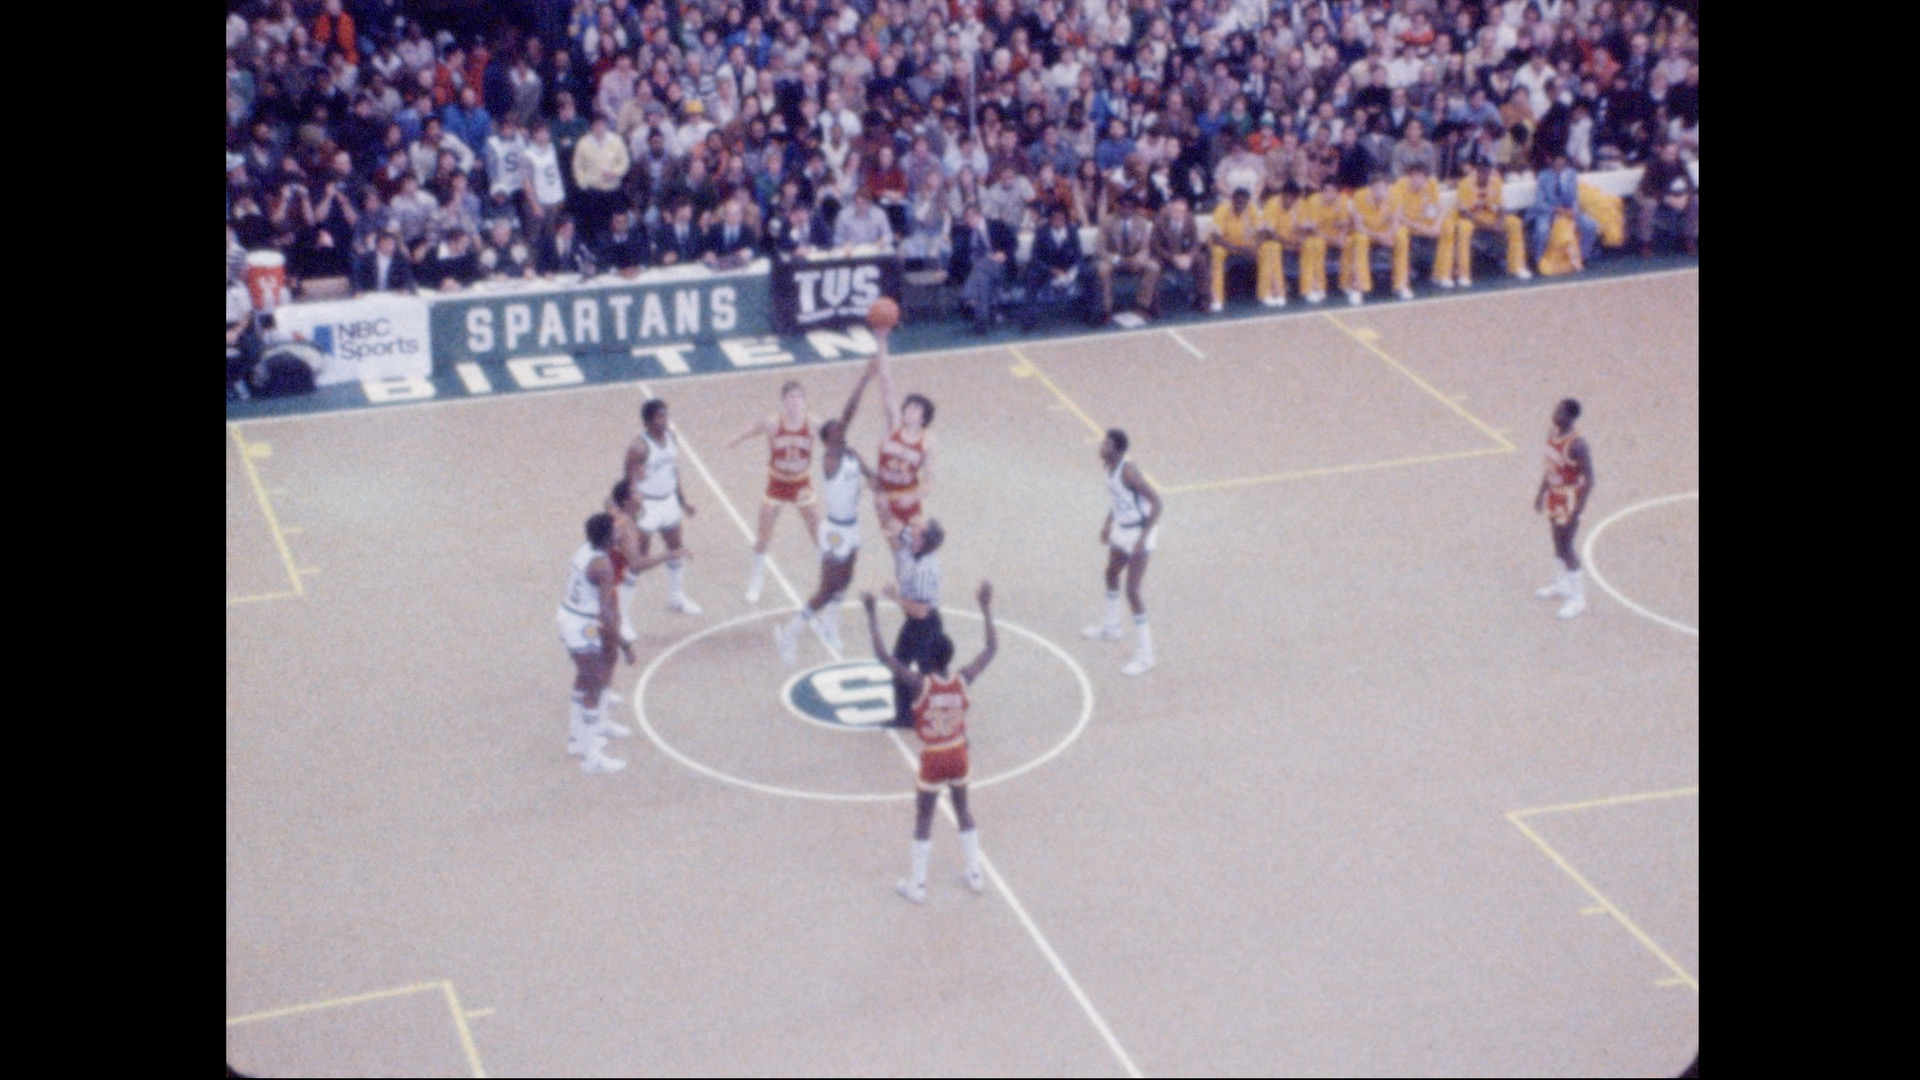 MSU Basketball vs. Minnesota (home), 1979